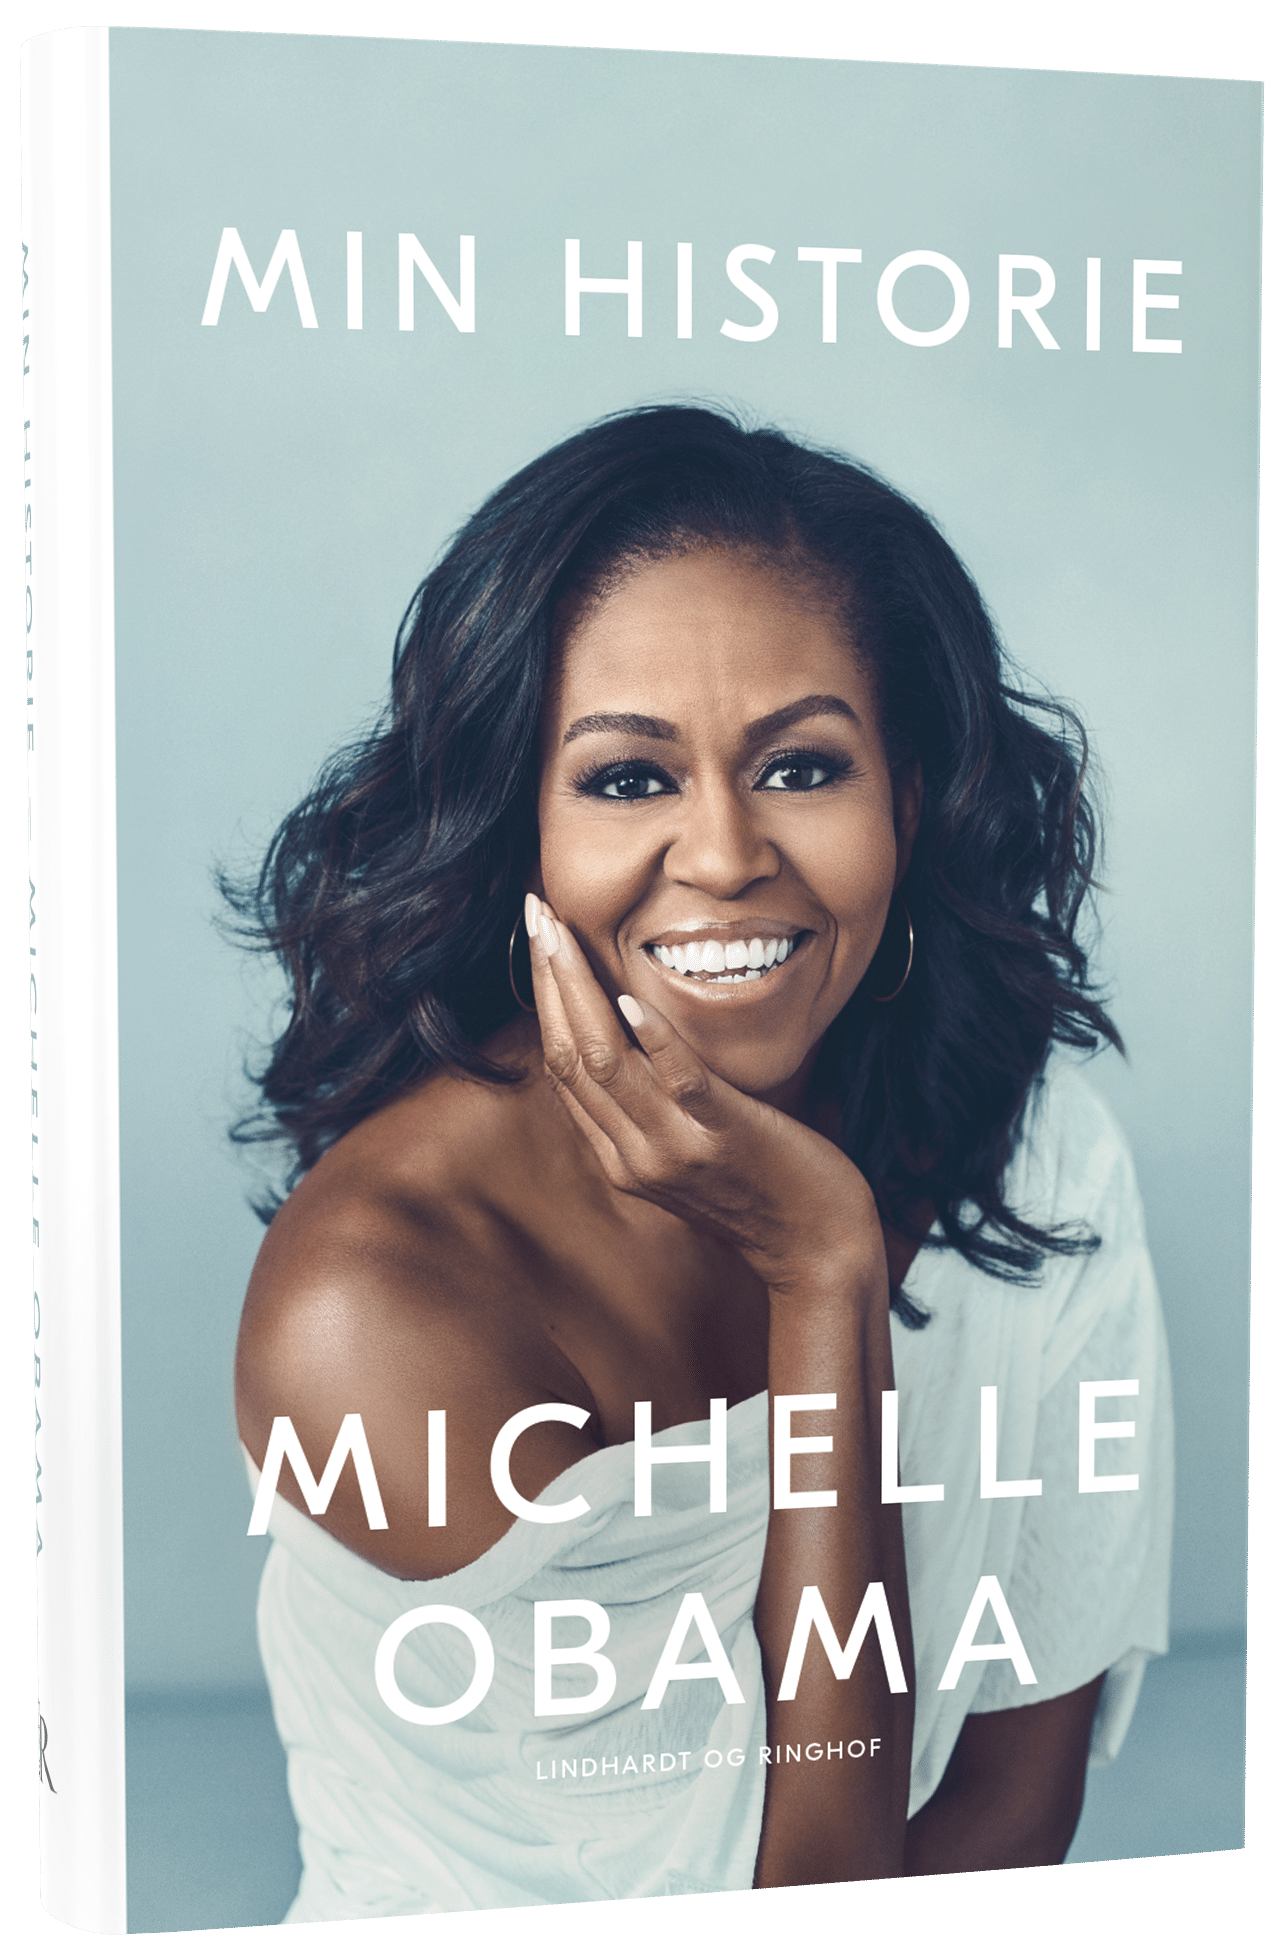 Min historie, Michelle Obama, Obama, biografi, Becoming,